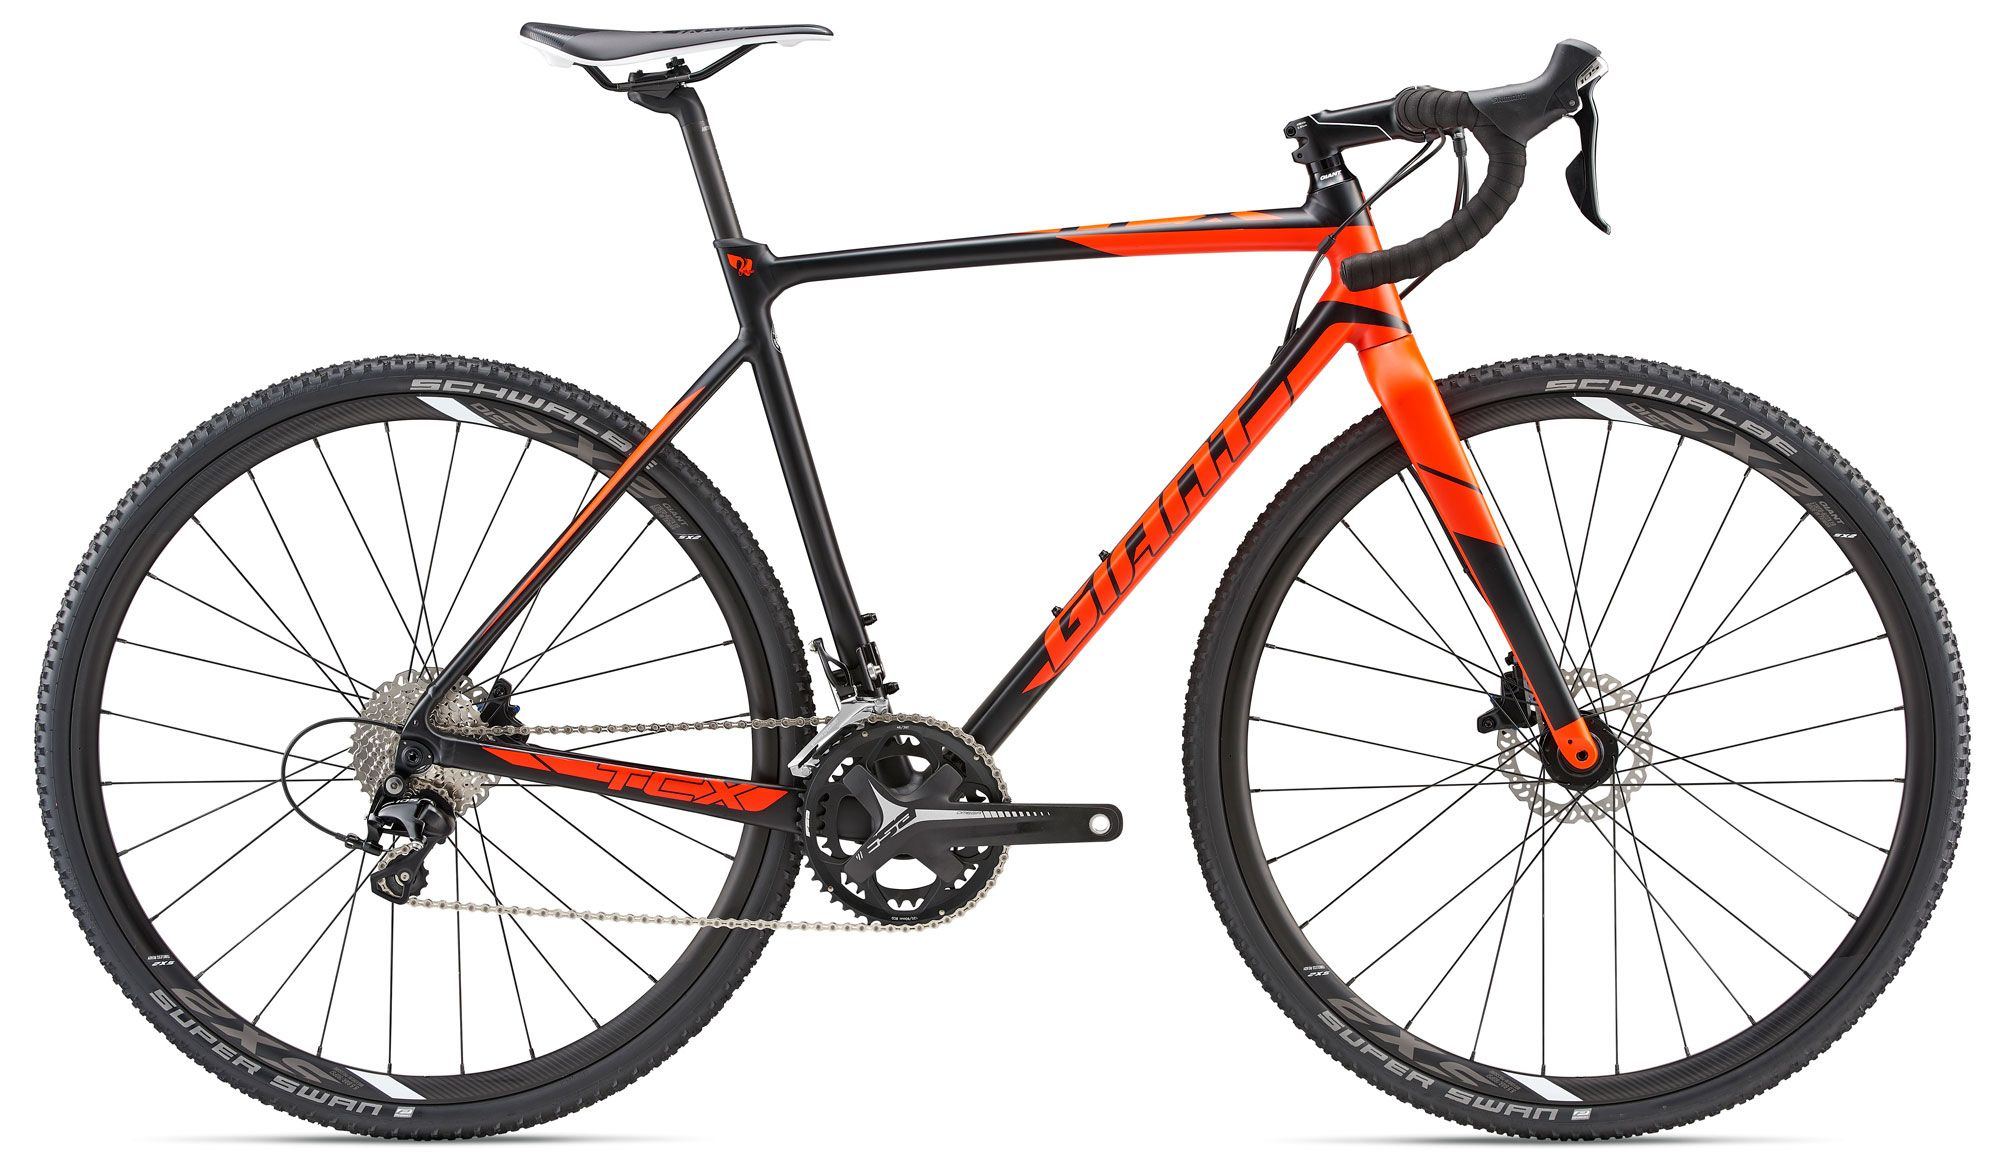 Велосипед Giant TCX SLR 2 2018 велосипед giant tcr advanced sl 2 2017